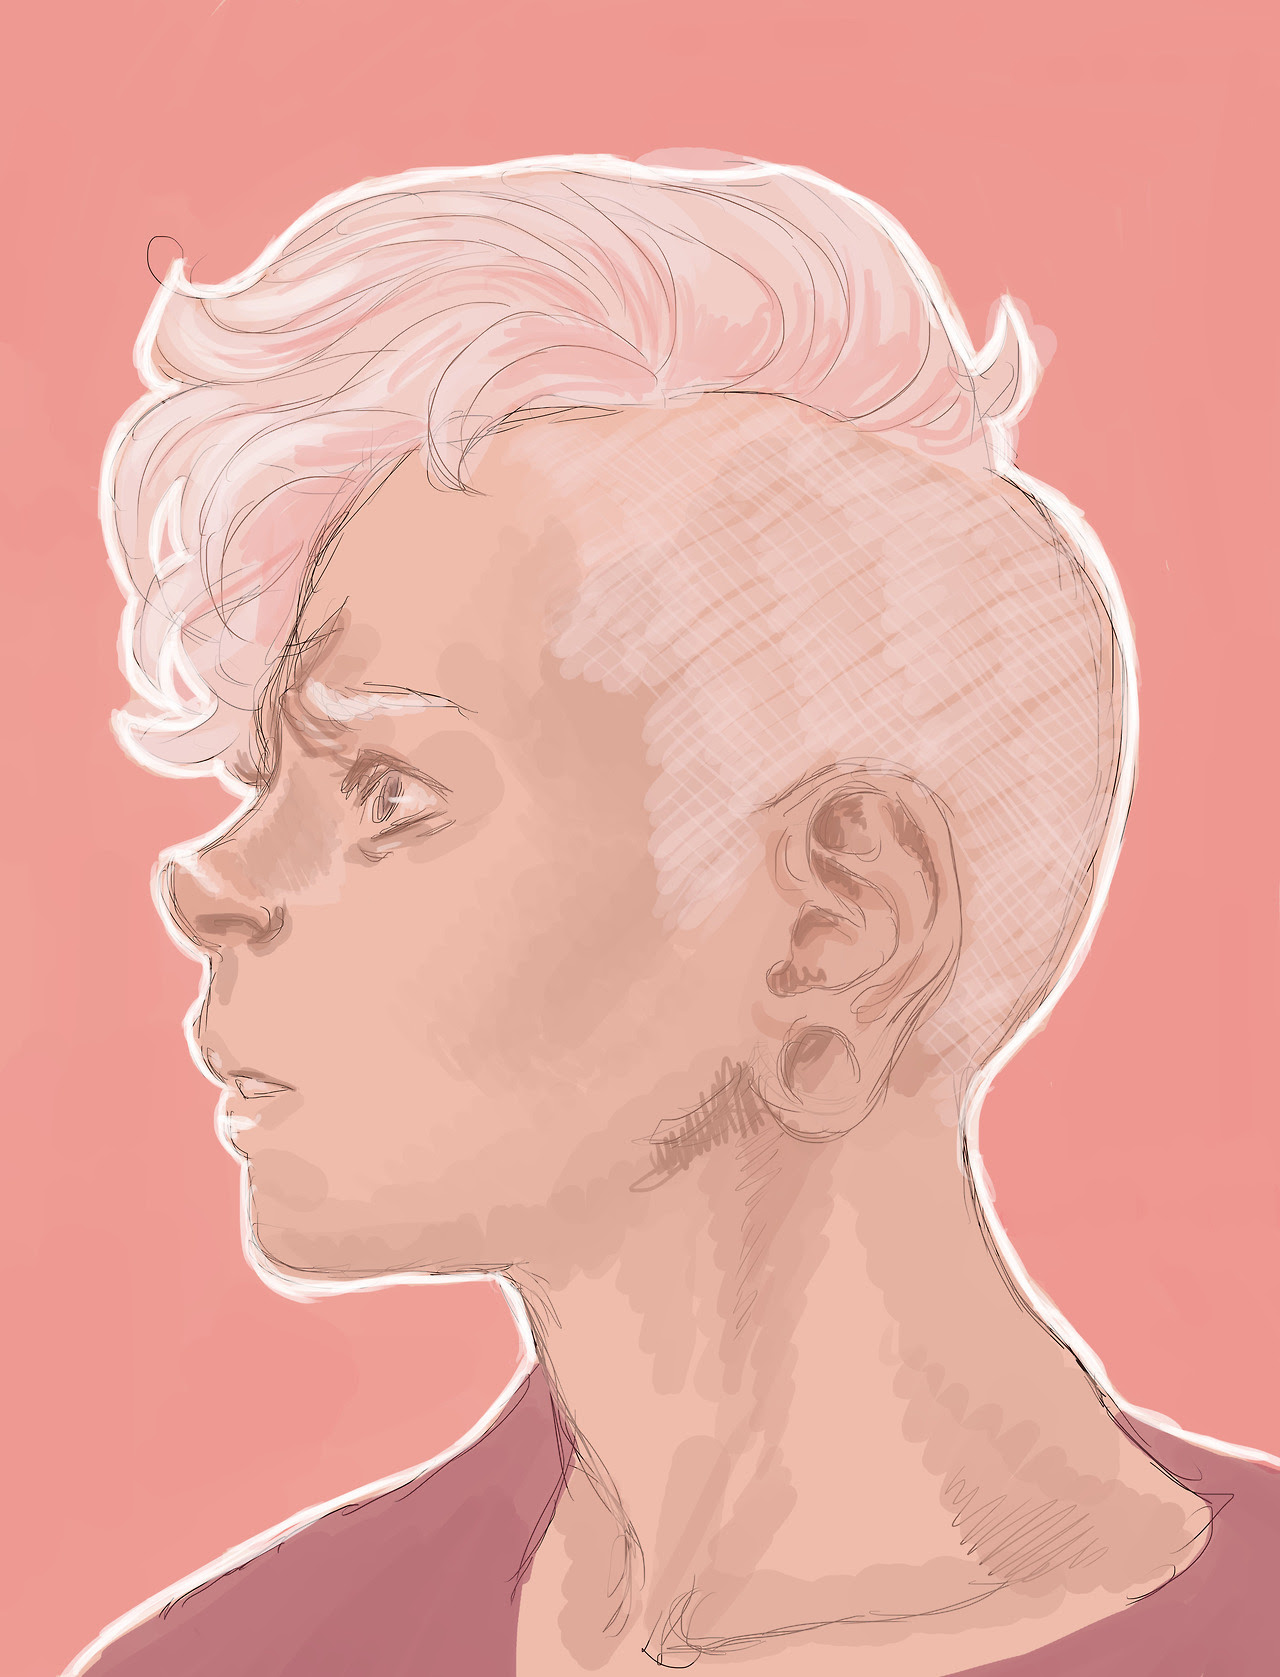 I think Lars has become my new favourite Steven Universe character, I'm loving the new pink look too